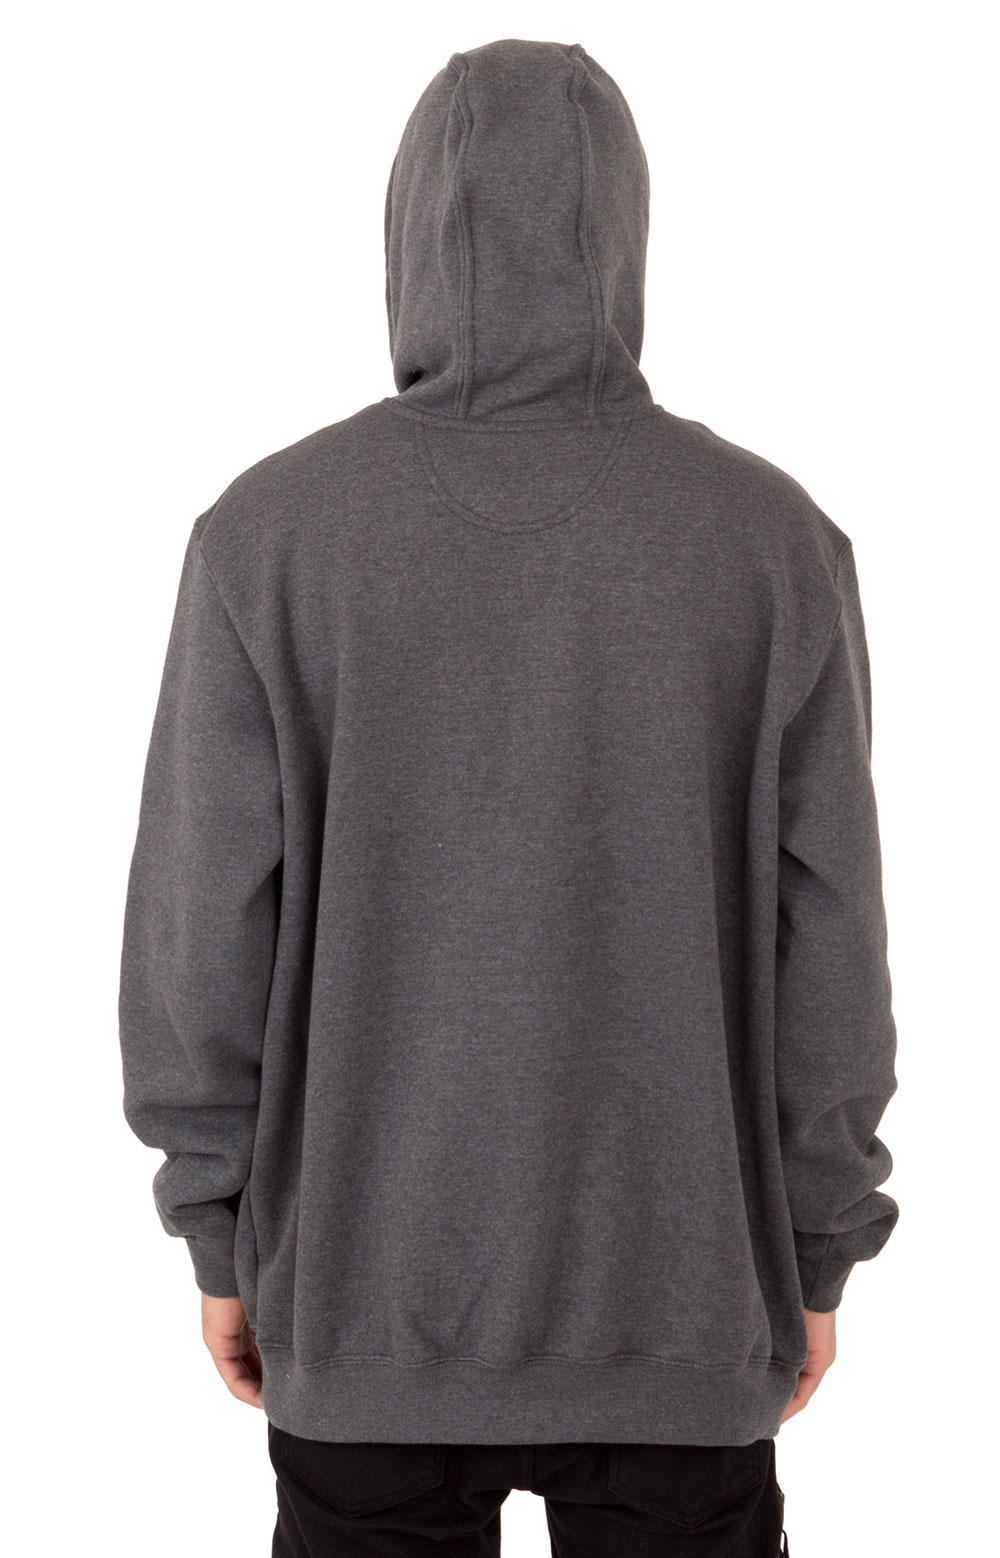 (K121) Midweight Pullover Hoodie - Carbon Heather  2